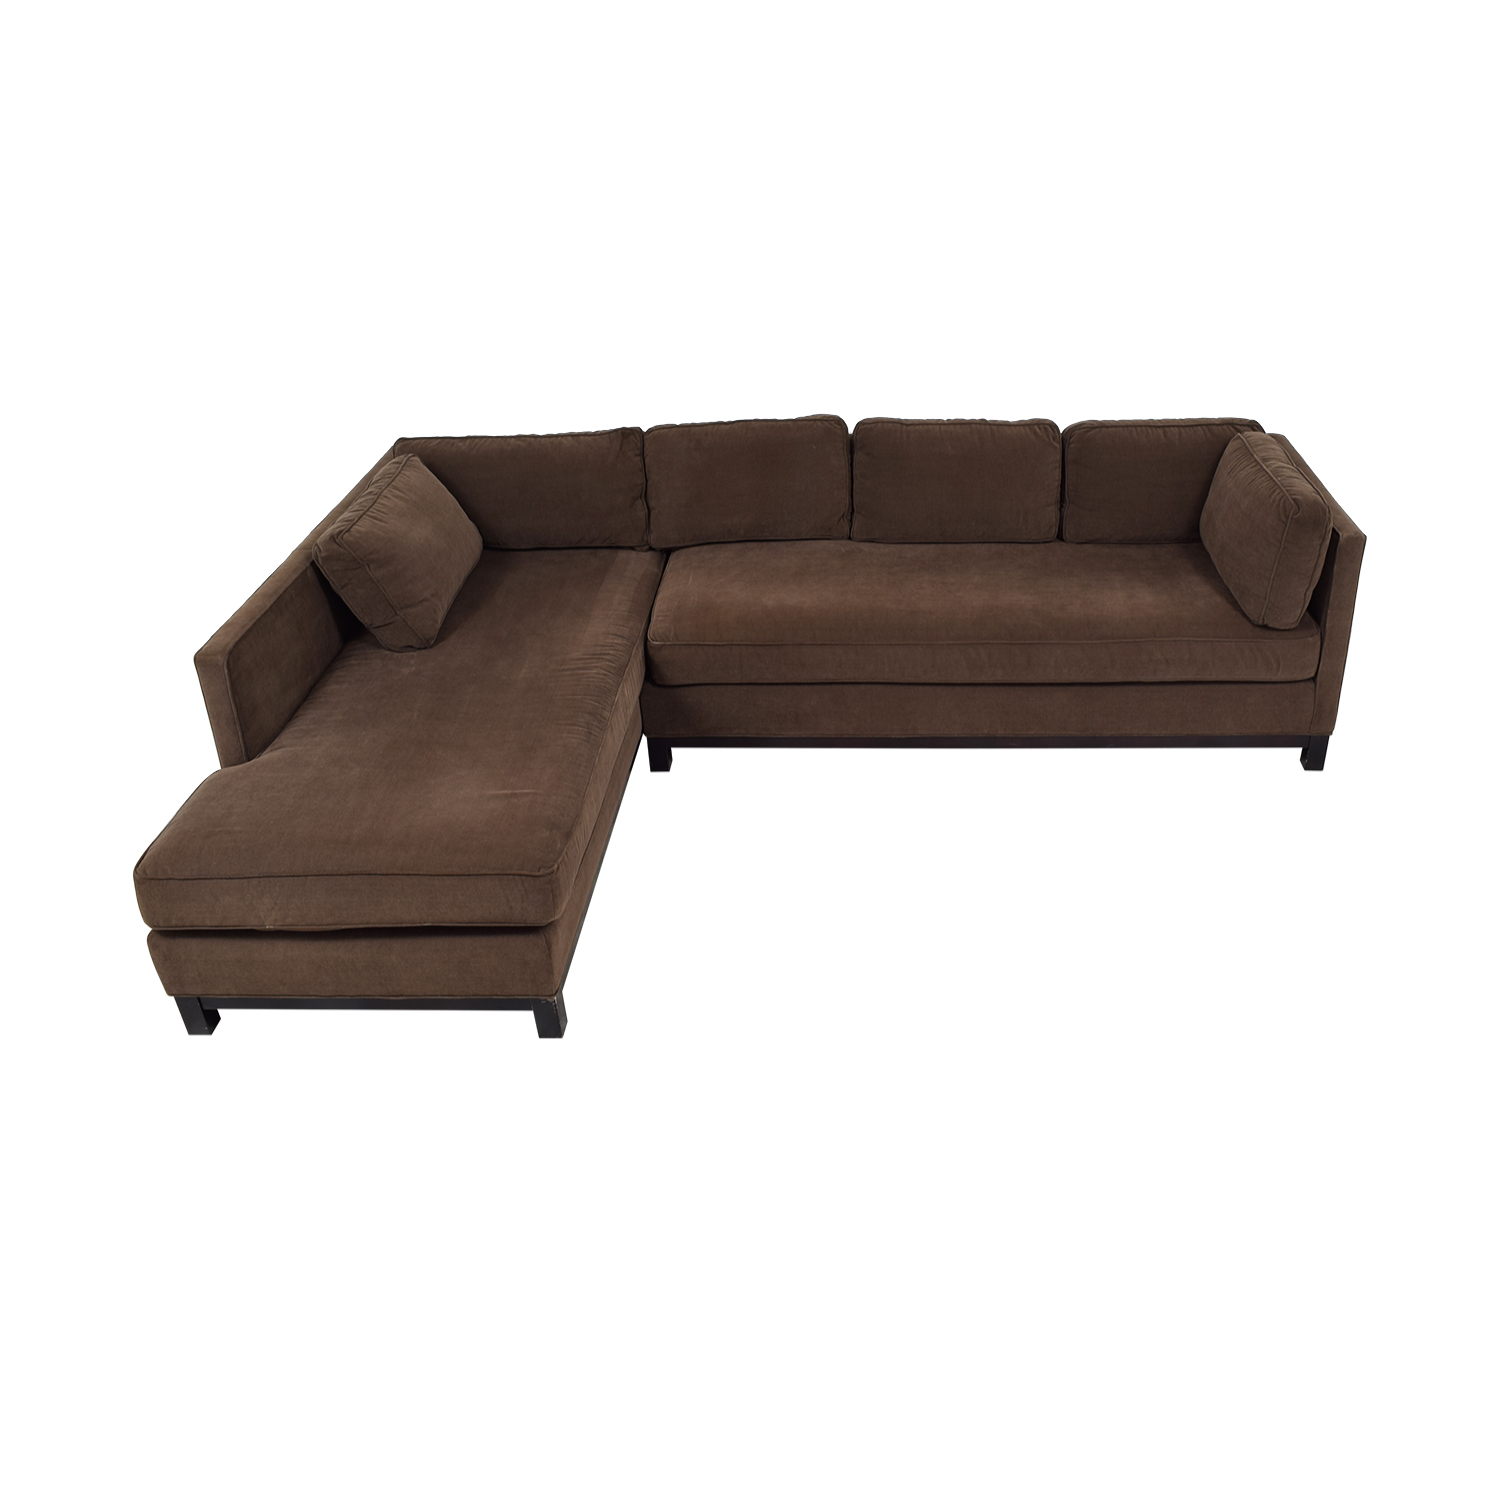 Mitchell Gold + Bob Williams Mitchell Gold + Bob Williams Chocolate Microsuede Chaise Sectional